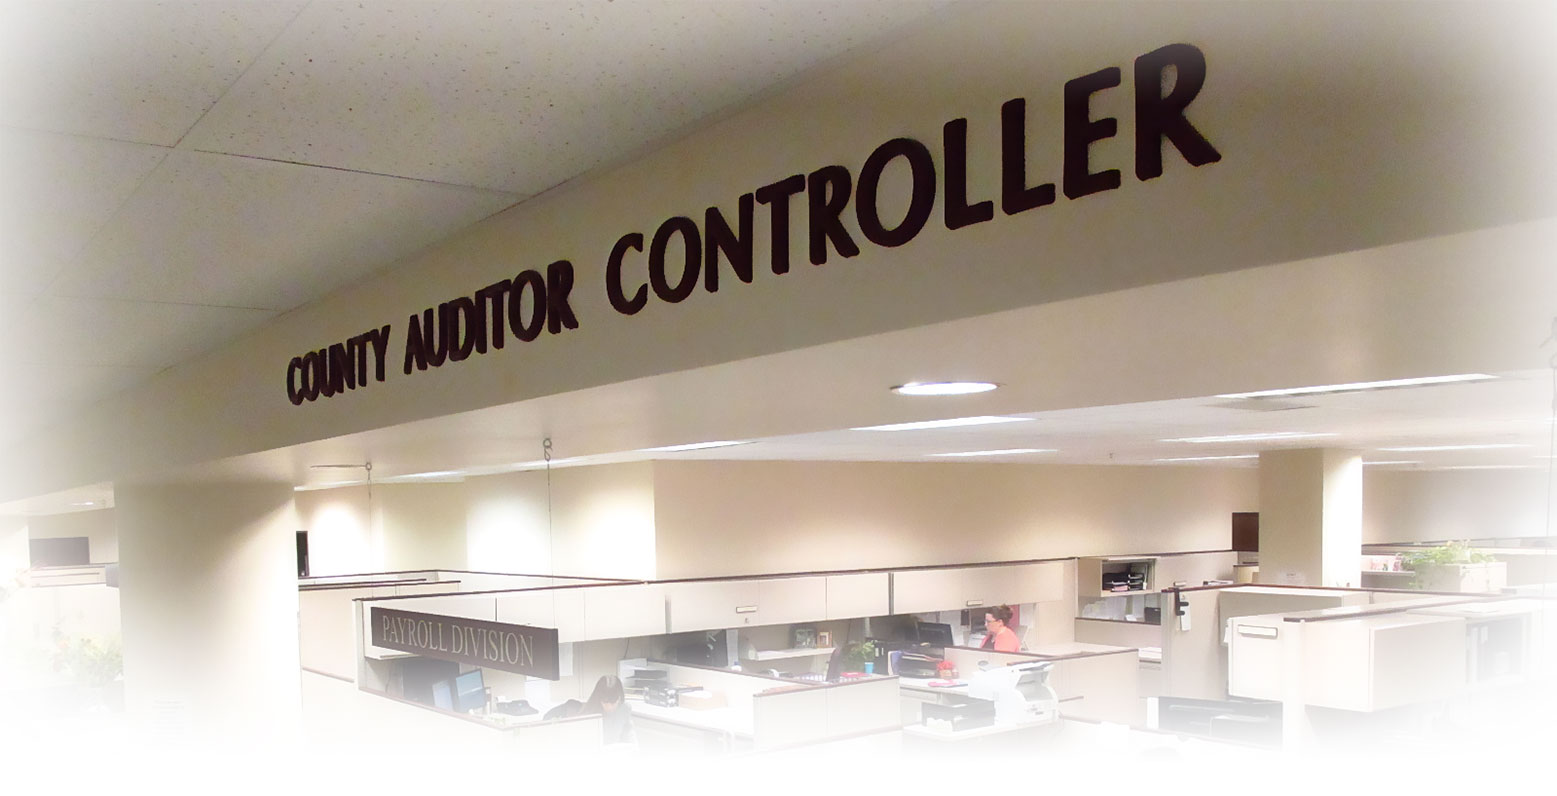 Welcome to Stanislaus County's Auditor-Controller's Office